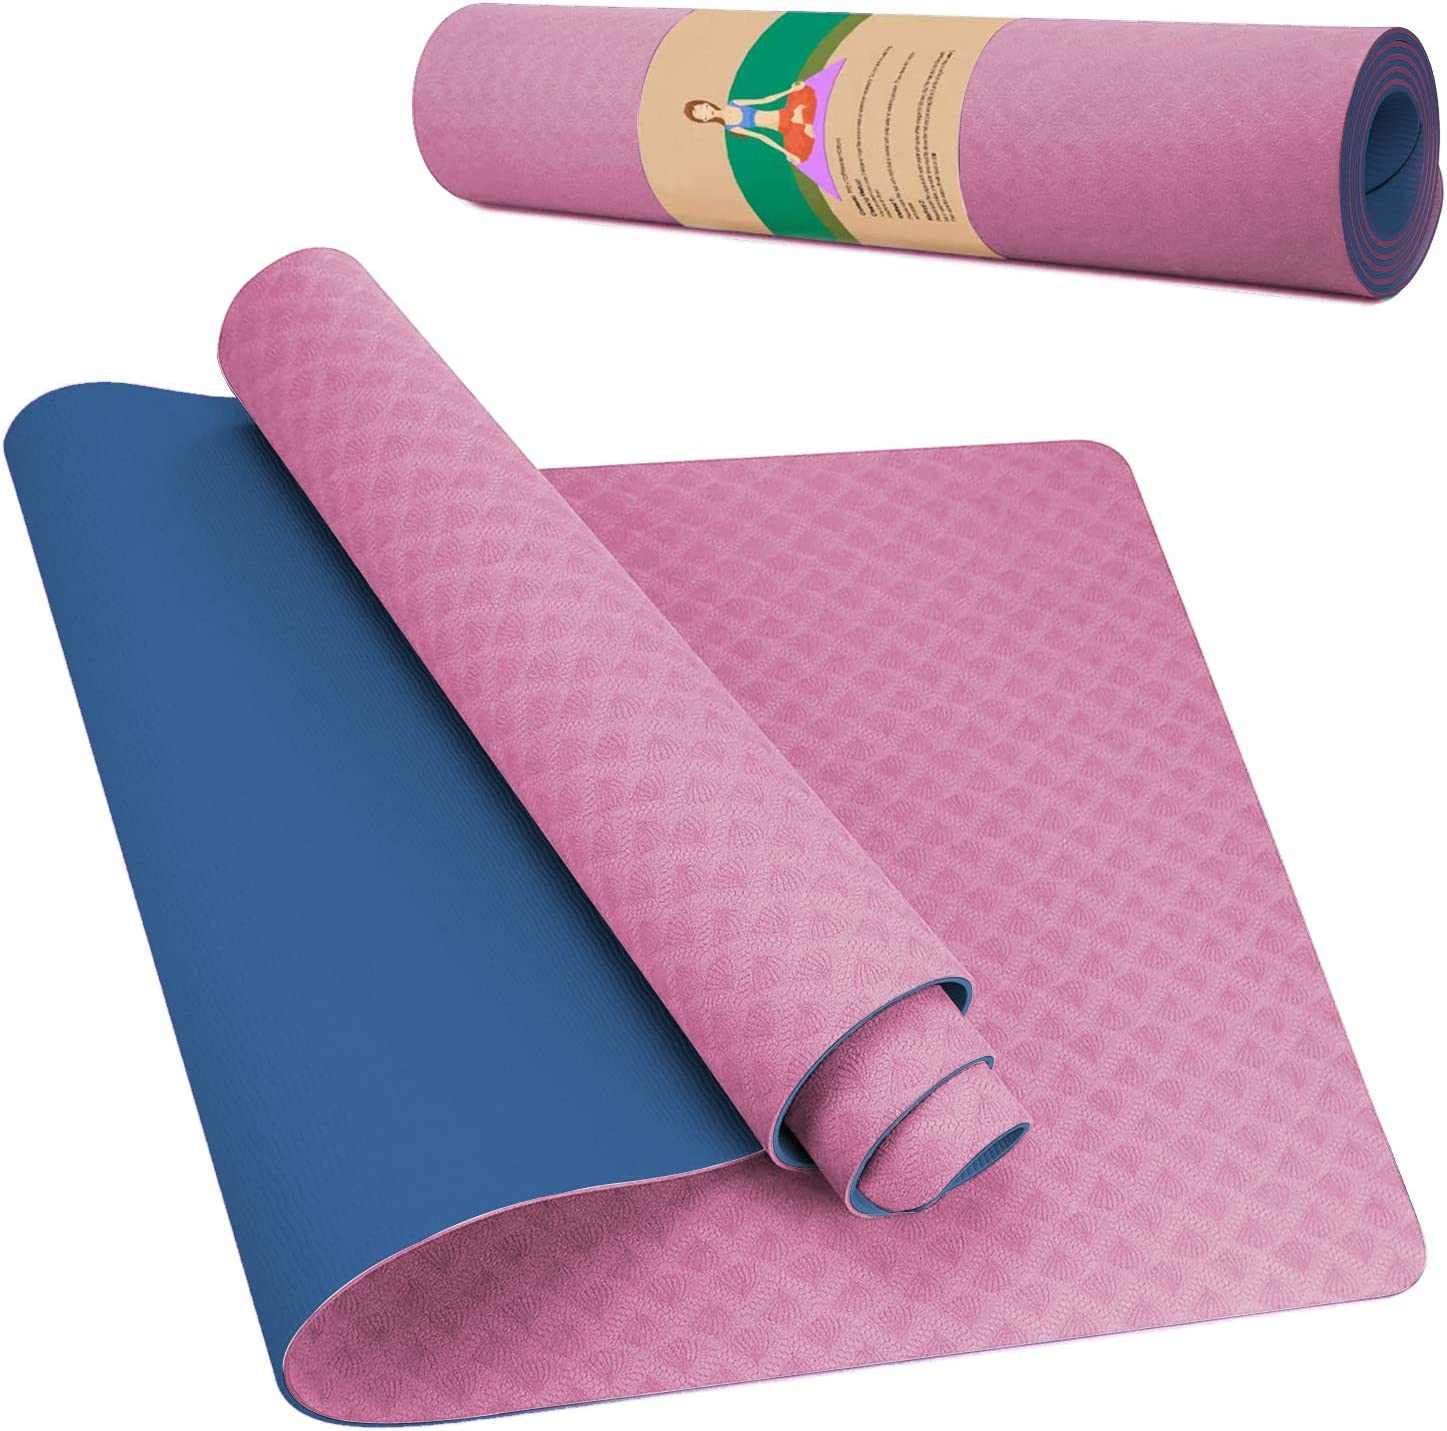 DREAM Quality inspection HORSE Yoga Mats Non-Slip Exercise 6mm safety 4-Inch 1 Extra Mat